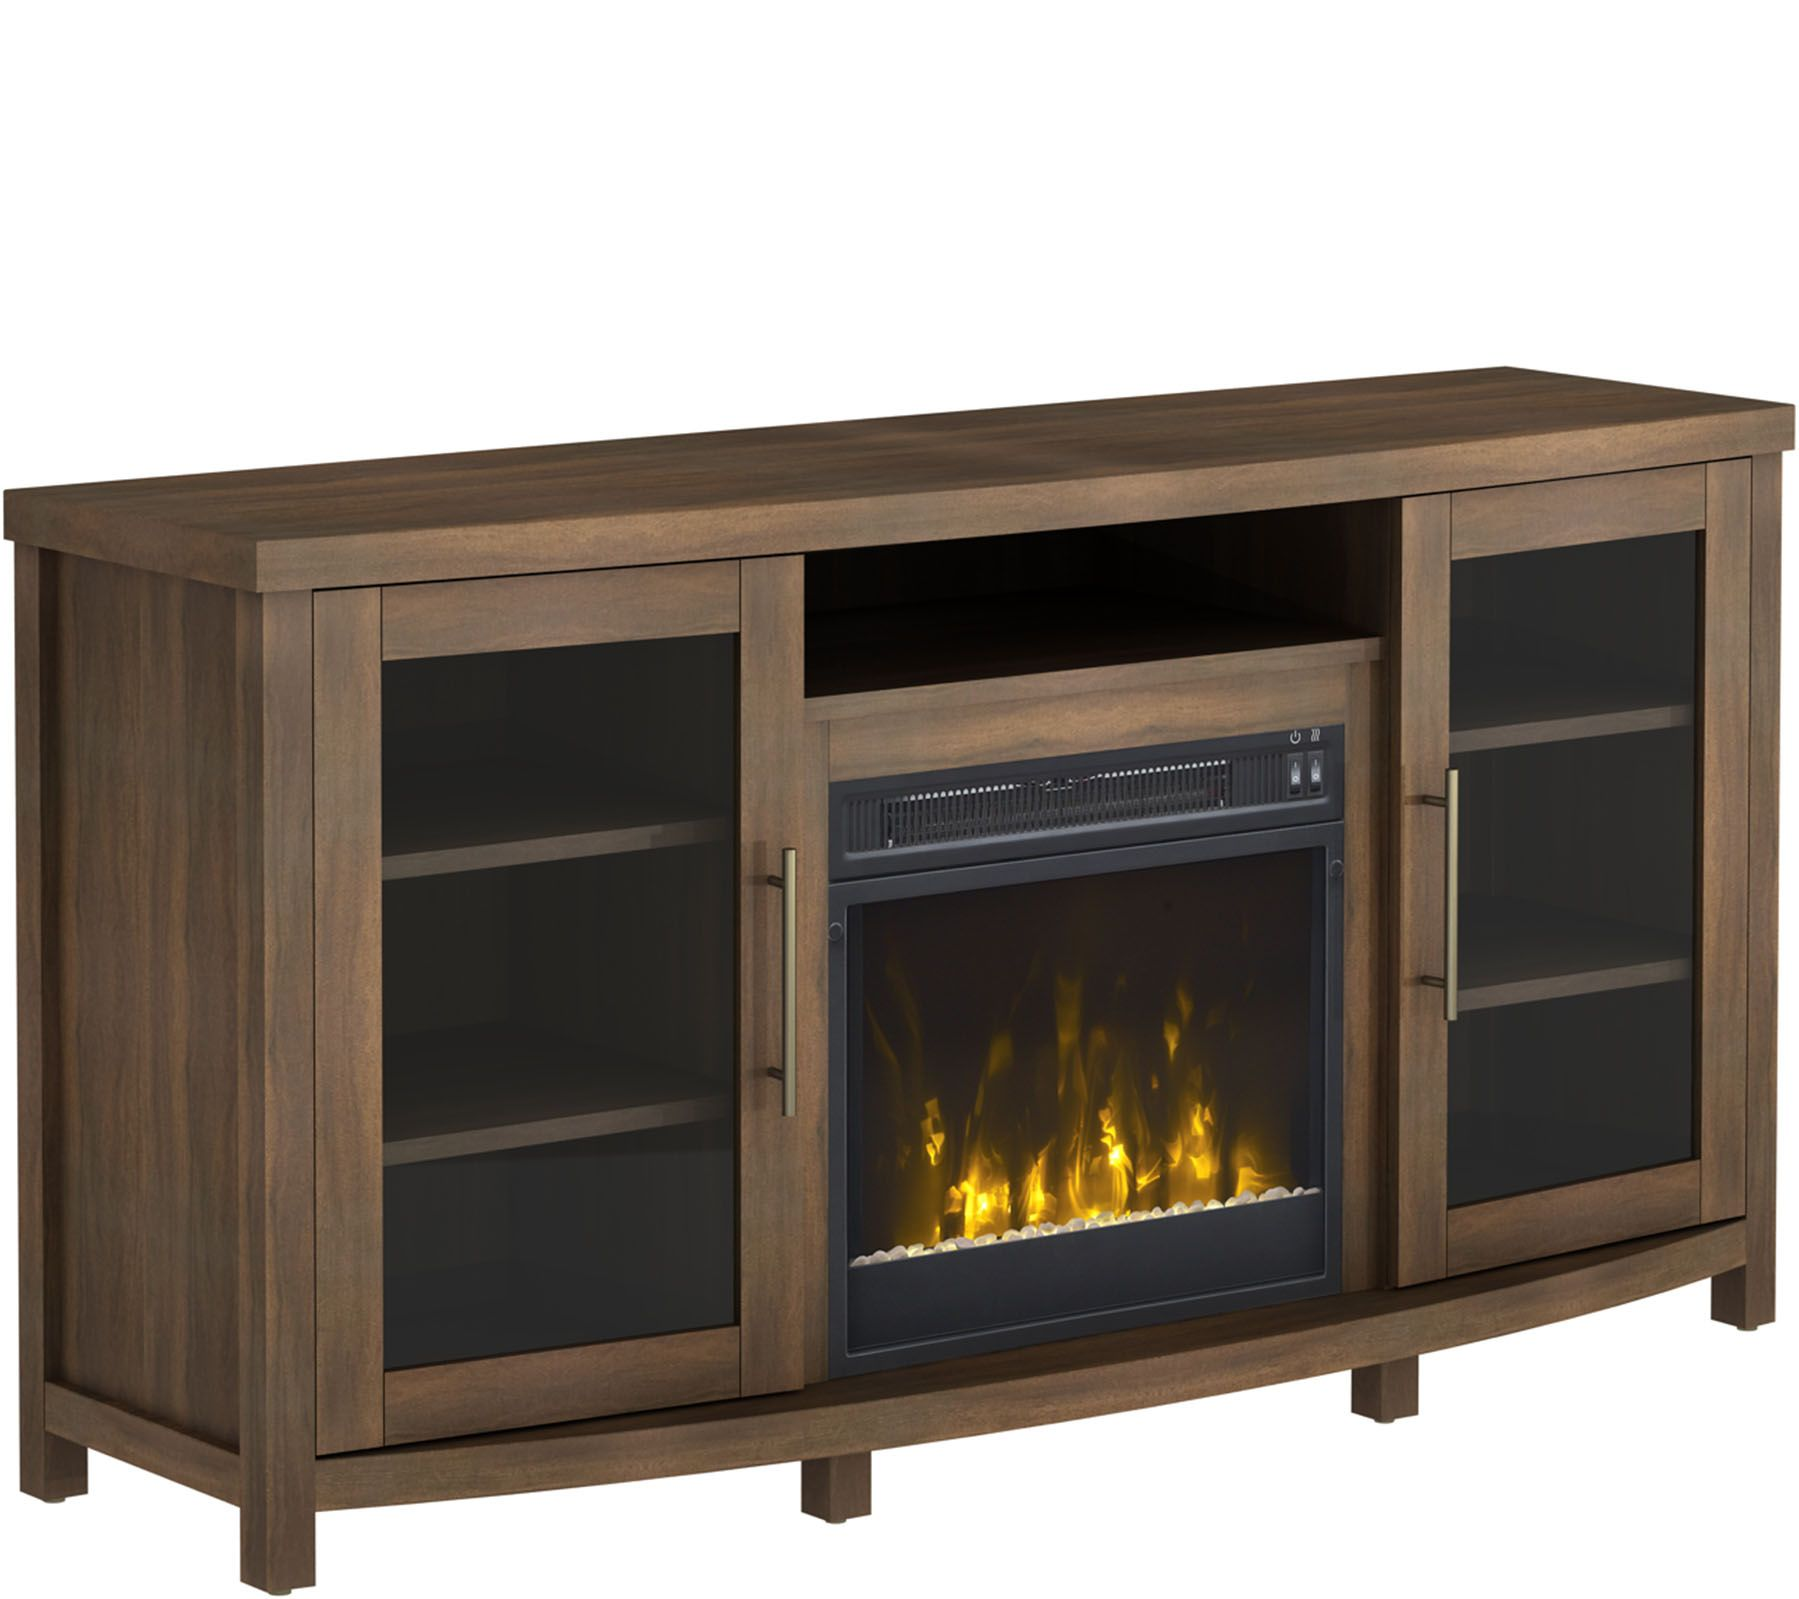 fireplaces u2014 heating u0026 cooling u2014 for the home u2014 qvc com